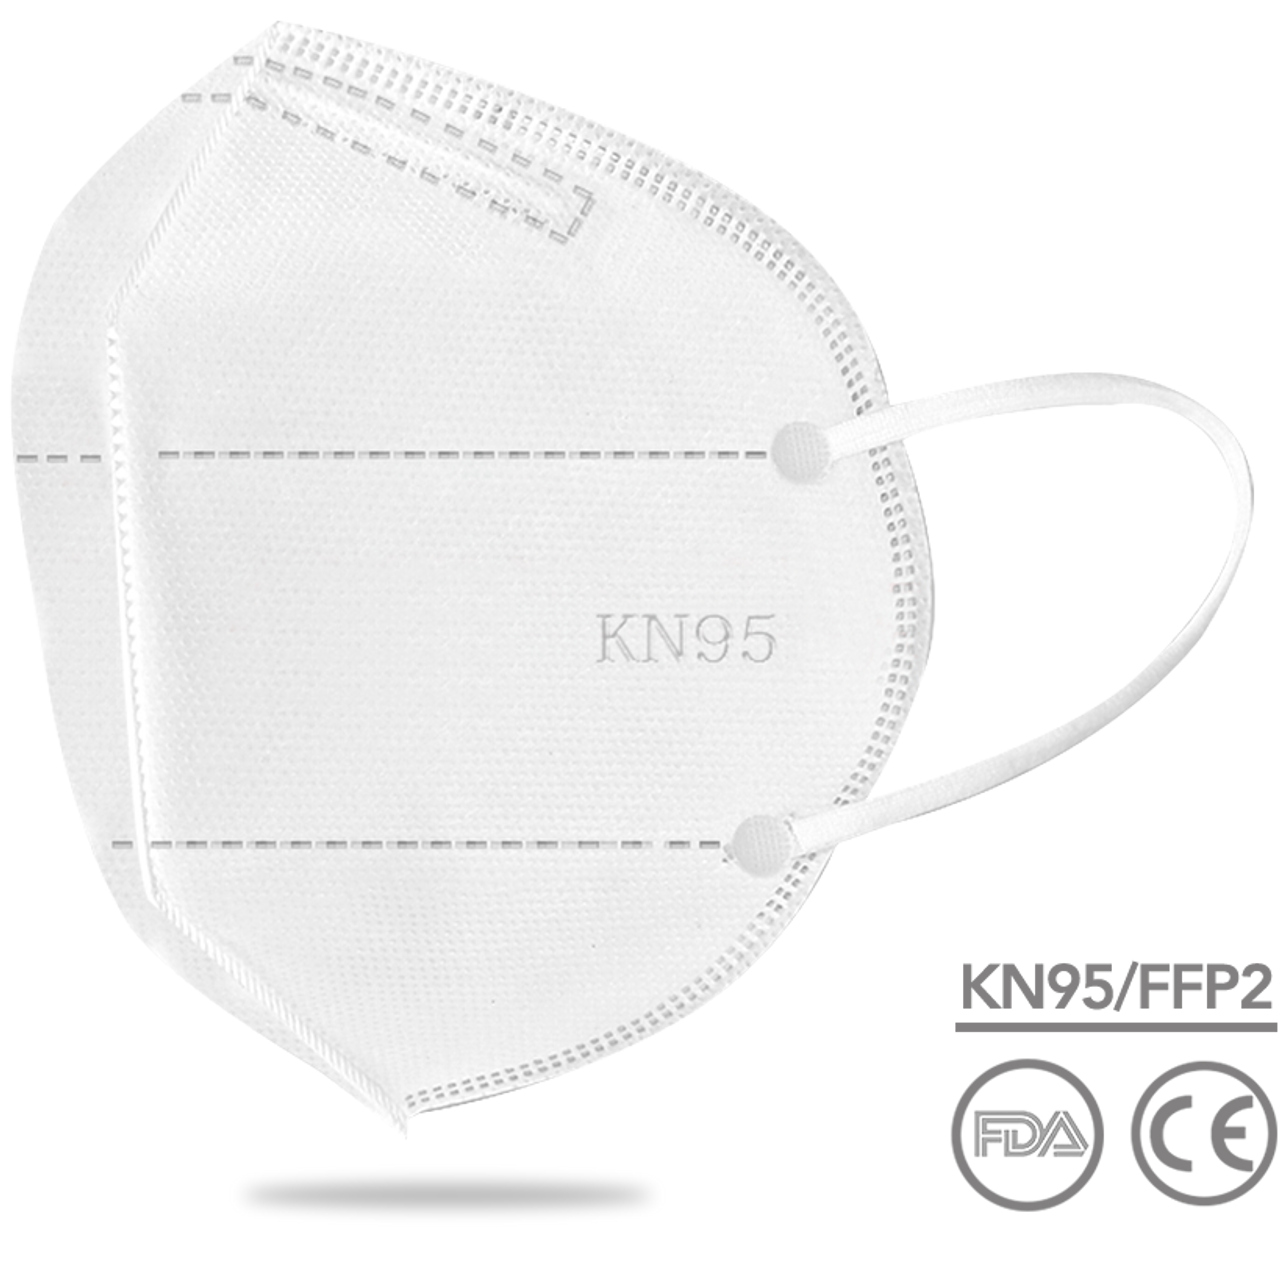 KN95 Standard Protection Face Mask (Pack of 10)